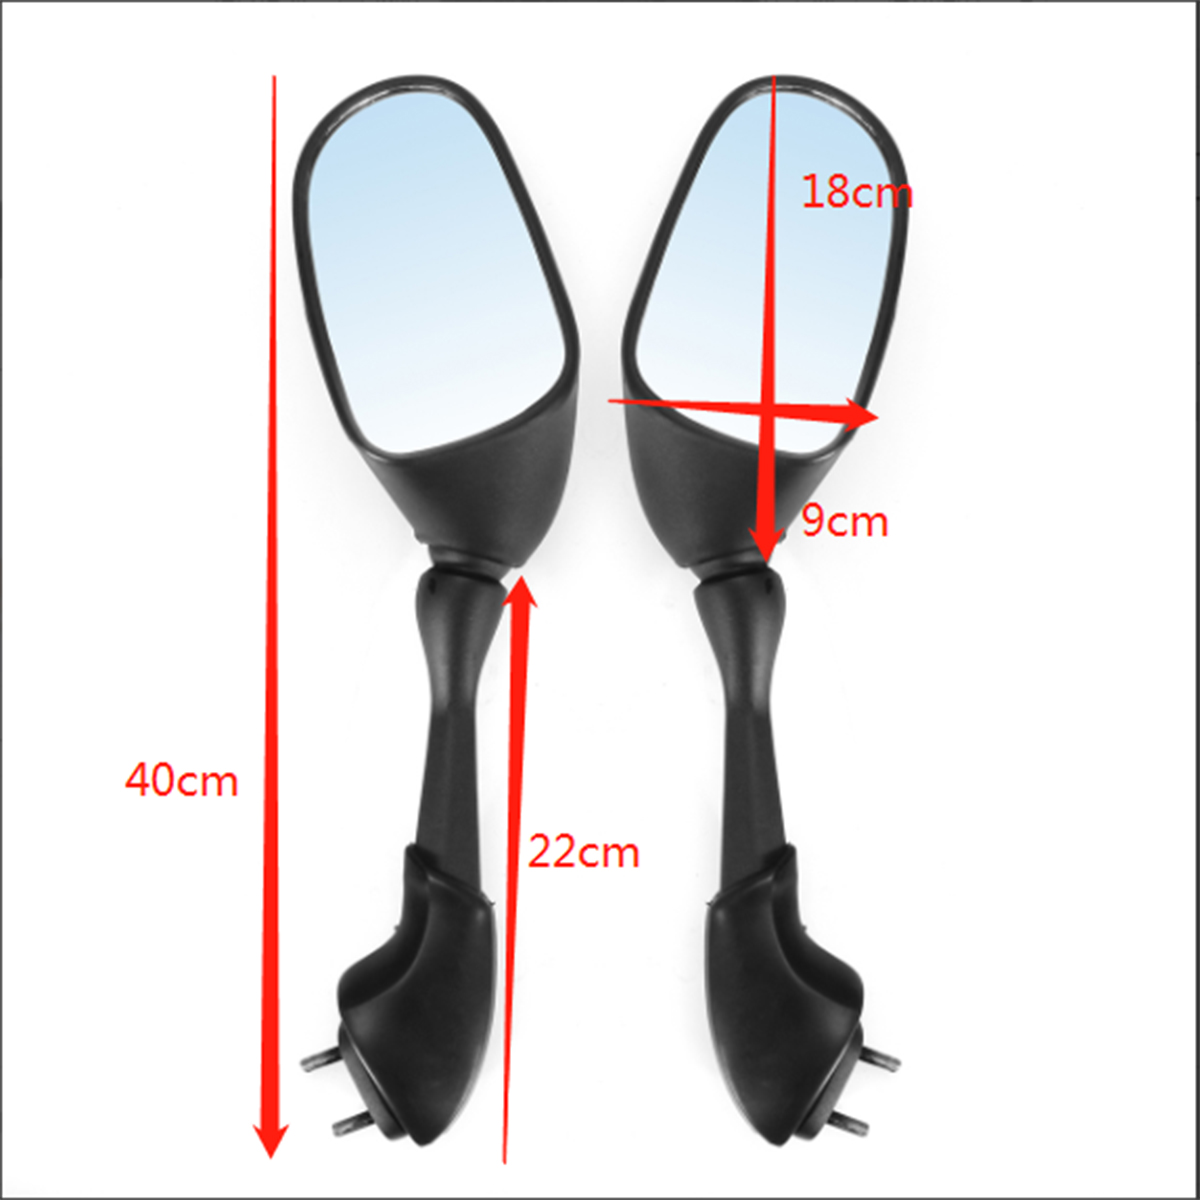 Motorcycle Side Rear Mirrors Balck Fit For Yamaha FZ1 FZS1000 2001-2005